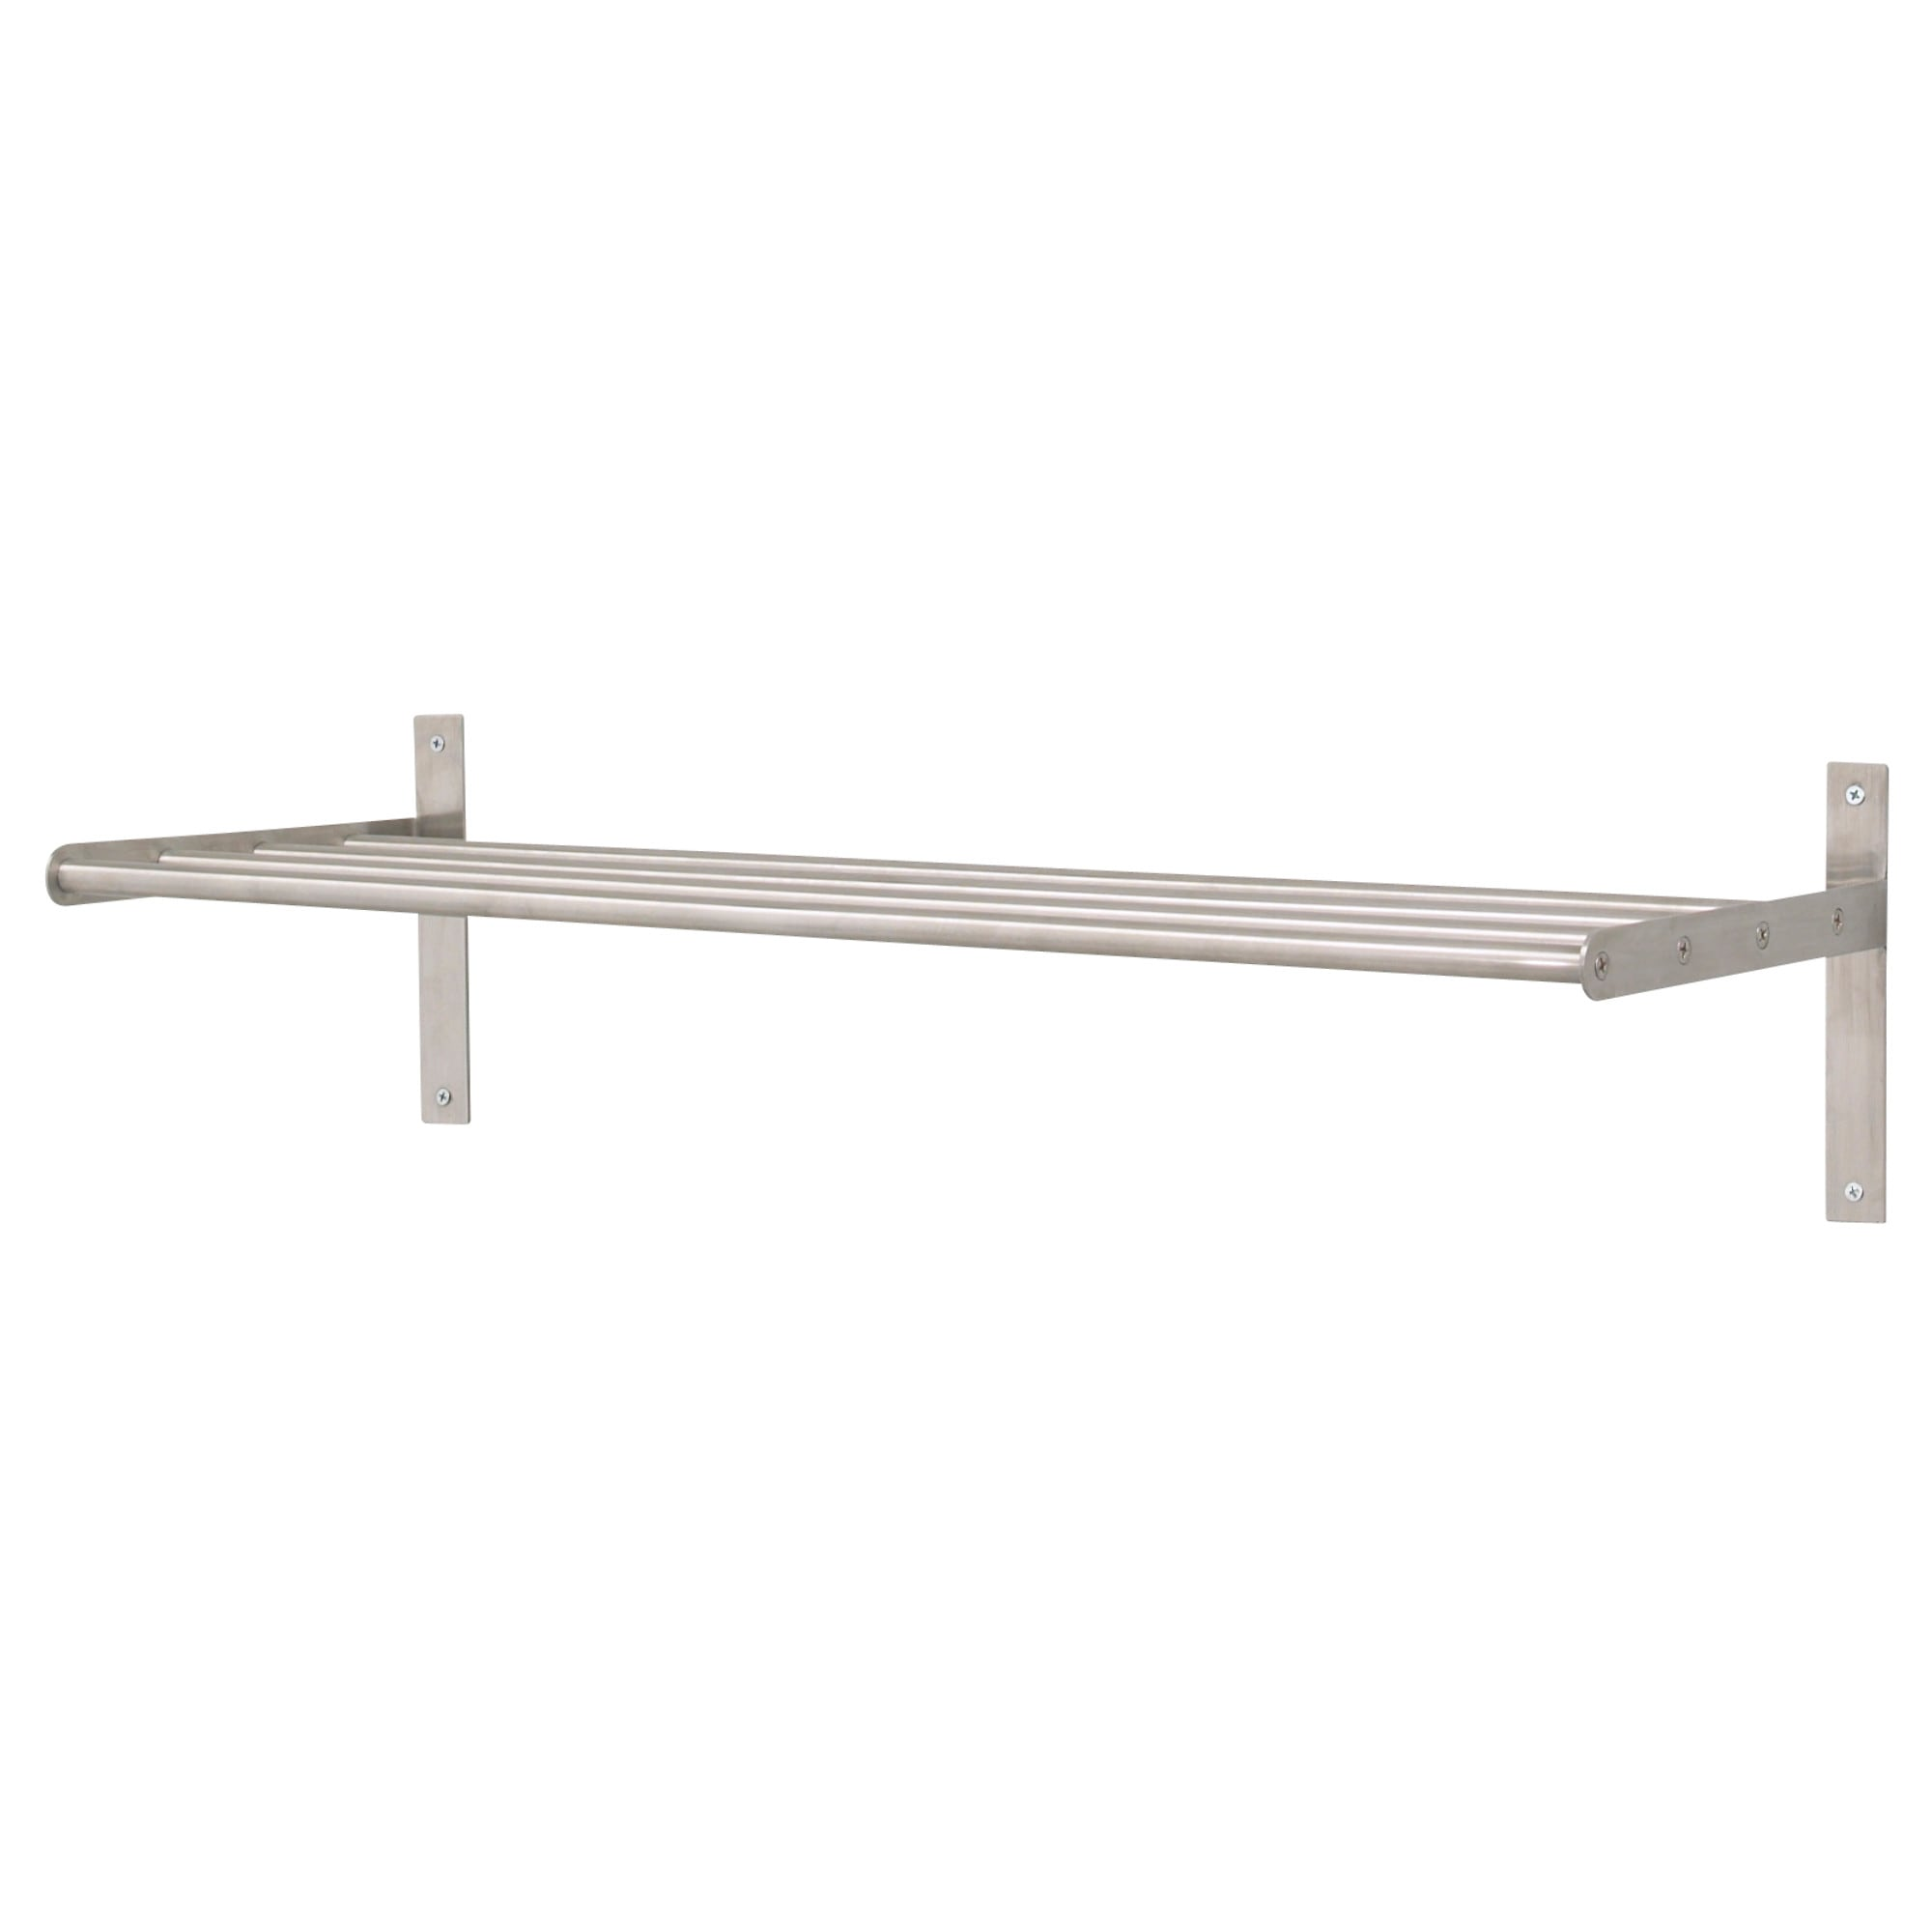 GRUNDTAL towel hanger shelf  stainless steel Length  31 1 2   Depth. Towel Rails   Holders   IKEA